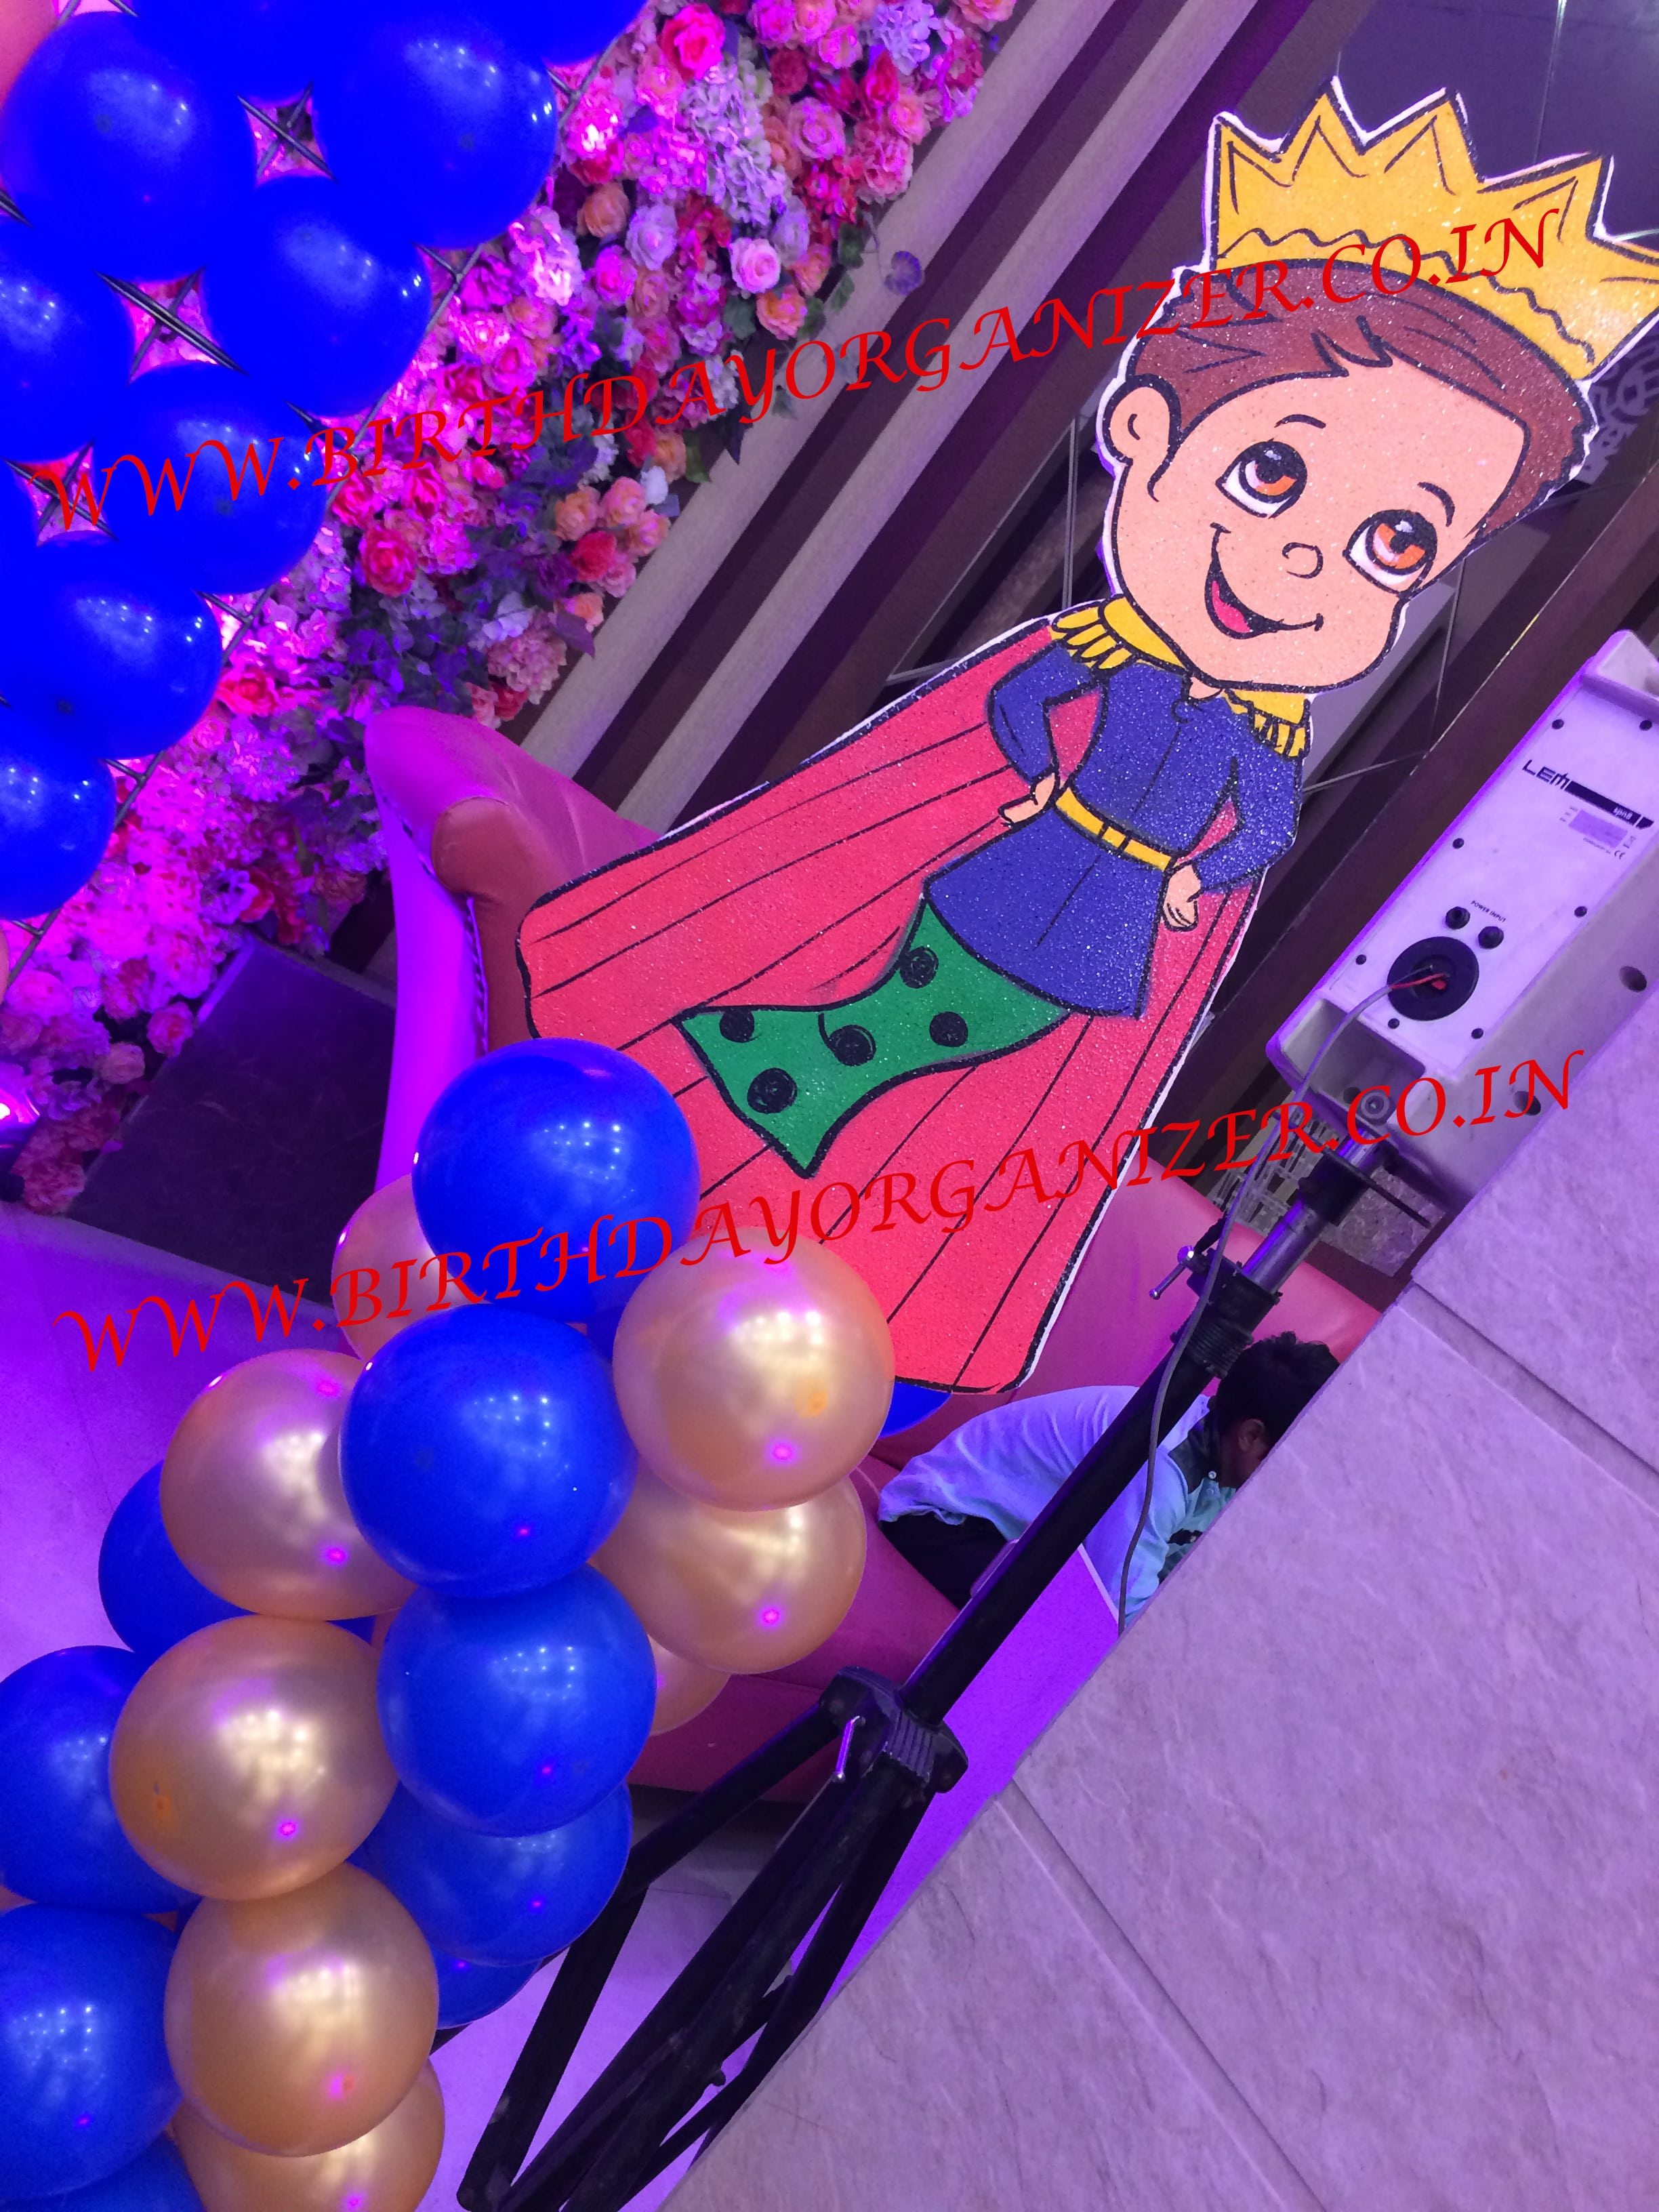 prince theme party planner in noida delhi ncr gurgaon, prince theme party ideas in noida delhi ncr gurgaon,